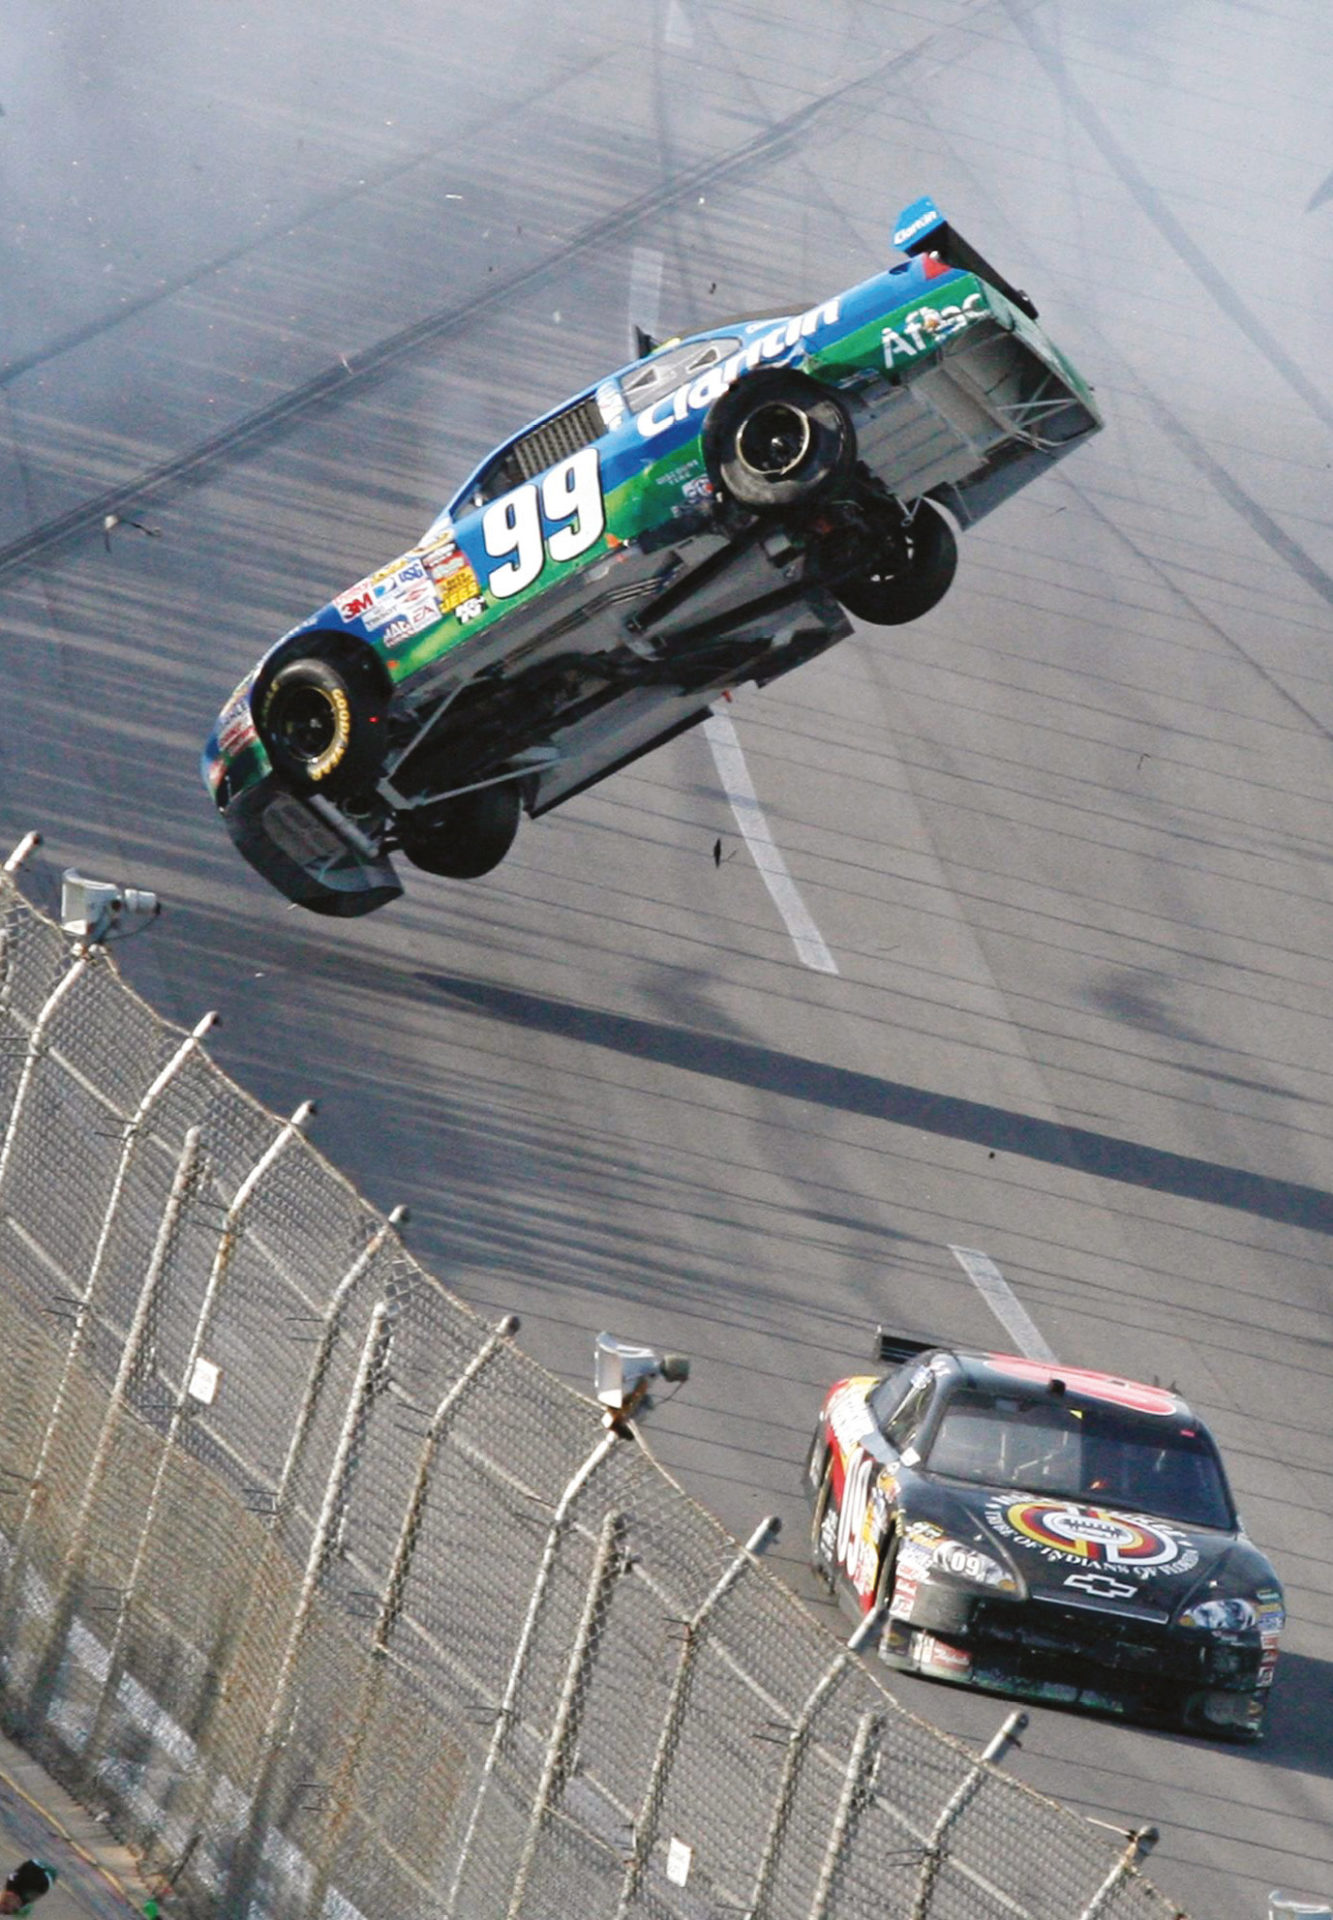 Edwards takes an unscheduled flight after last-lap contact with Keselowski at Talladega in 2009